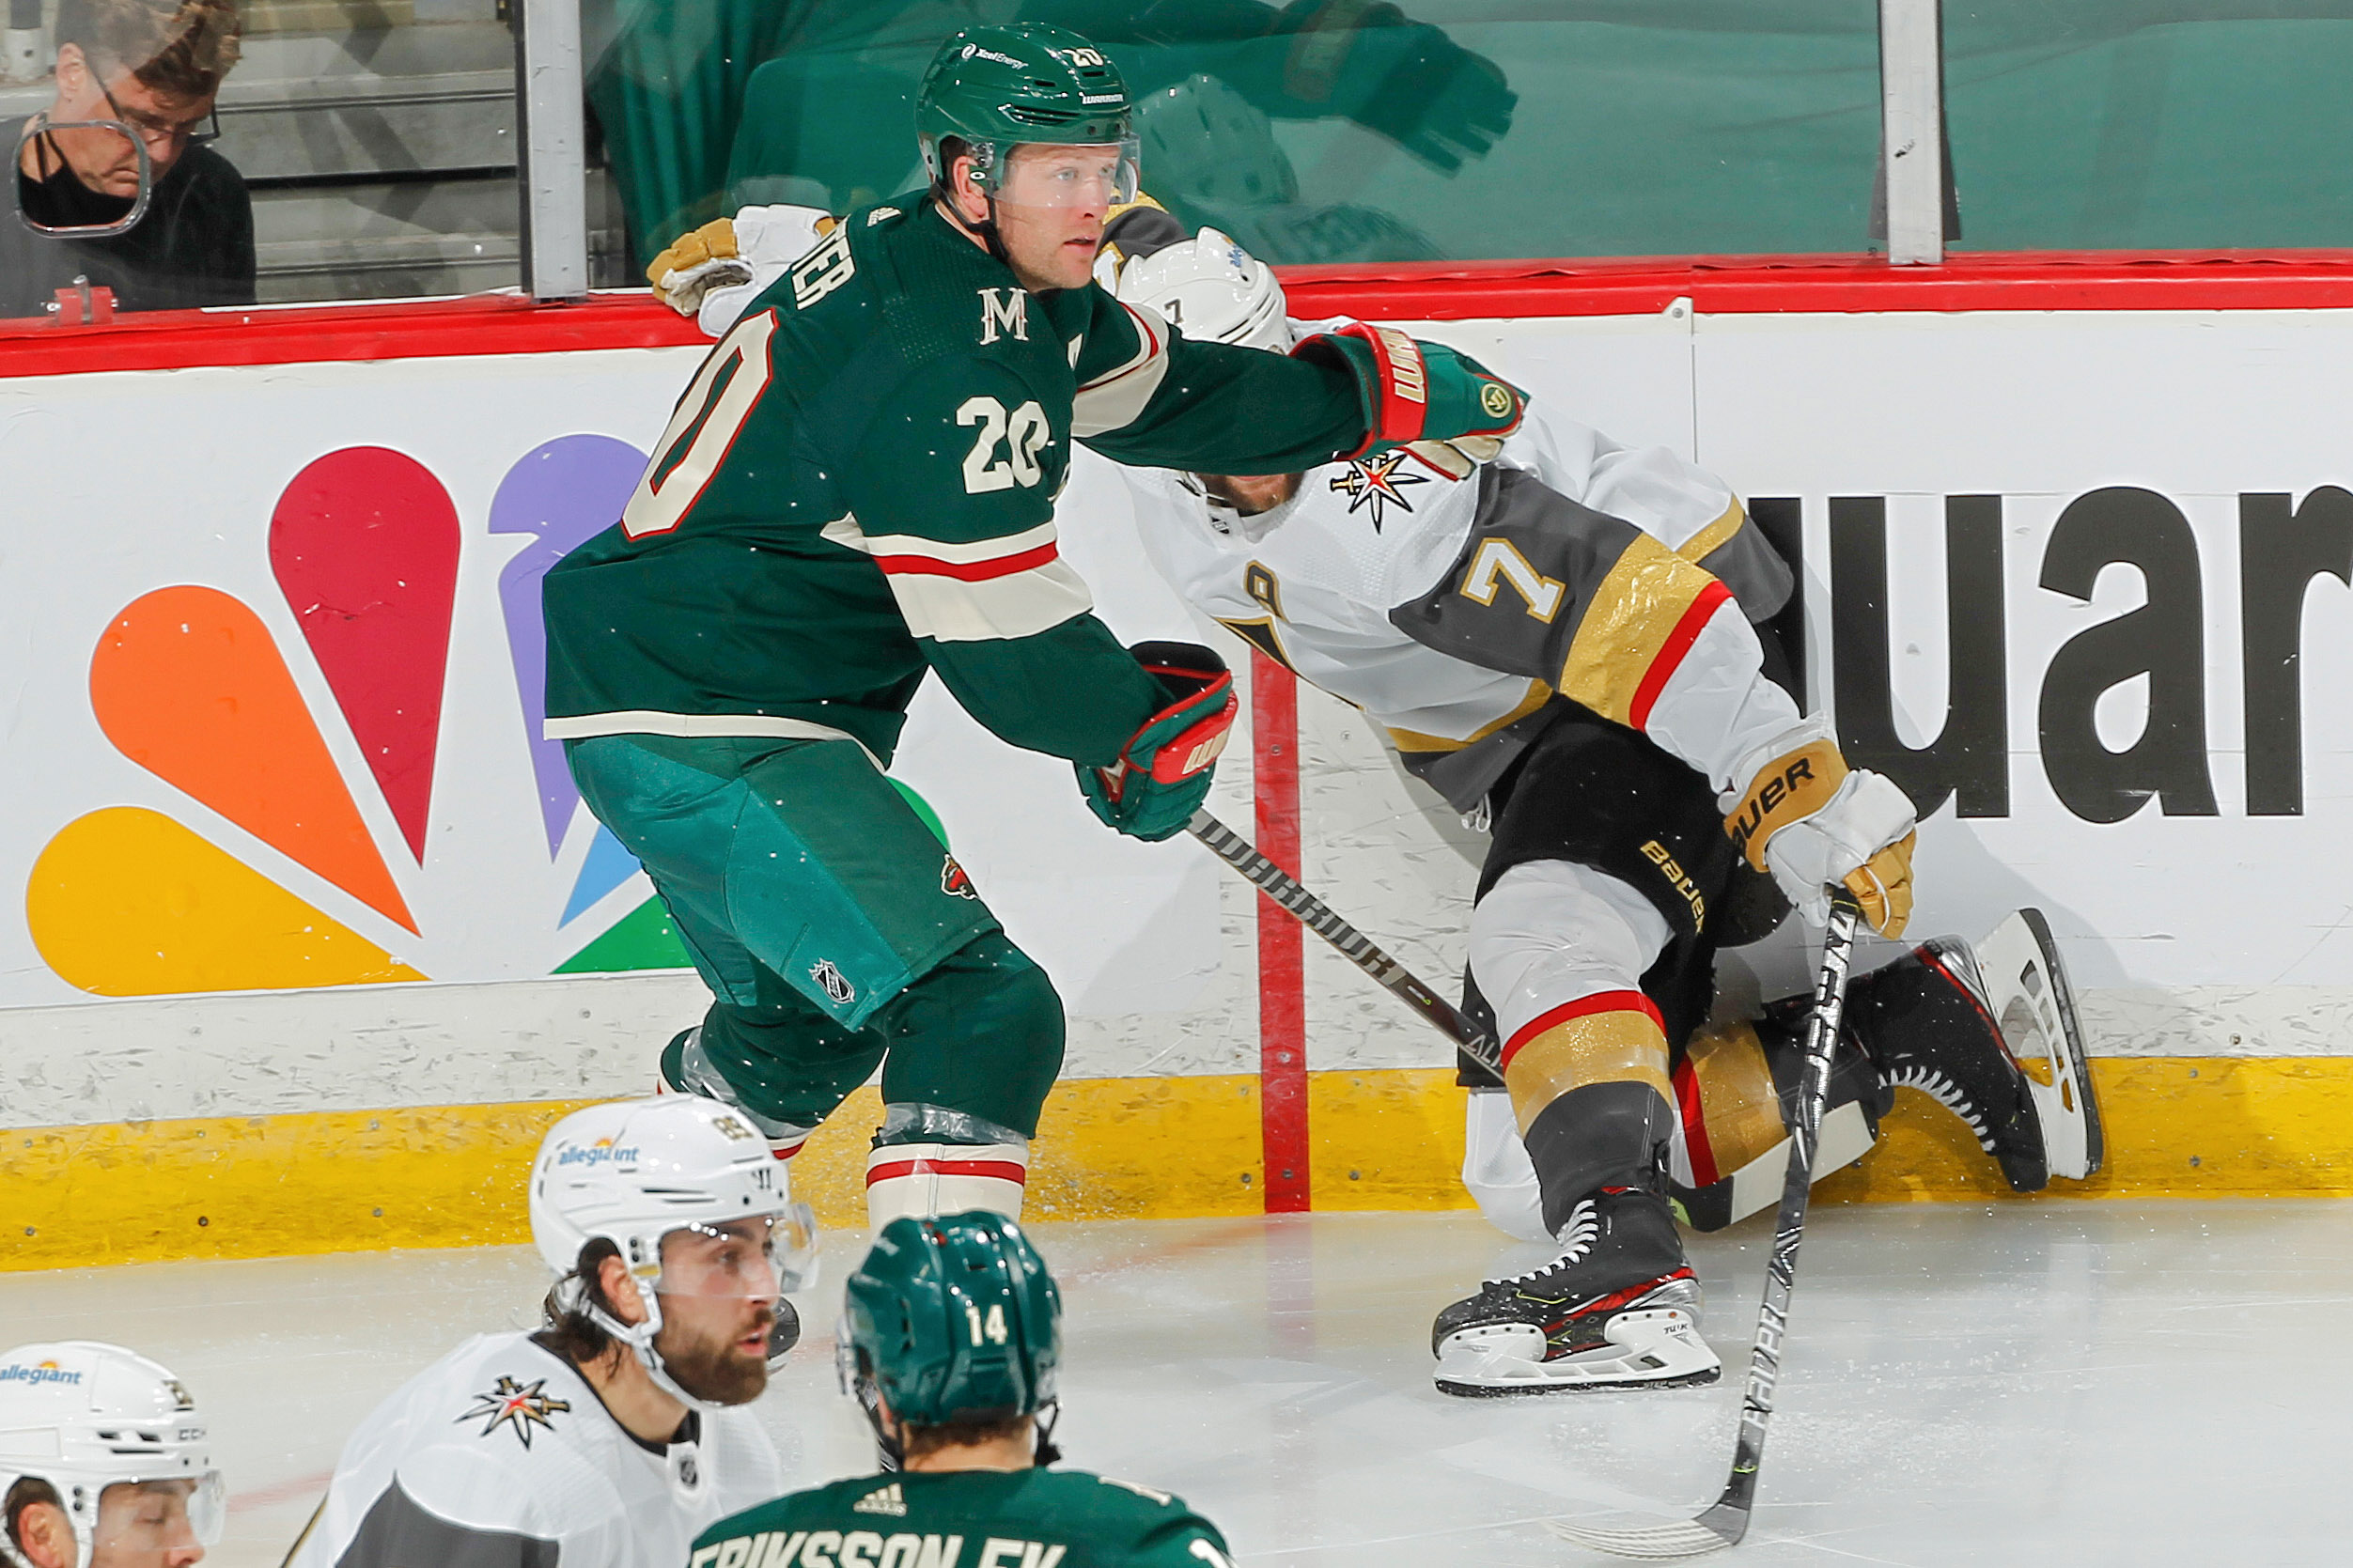 Ryan Suter defends against the Vegas Golden Knights in the 2021 Stanley Cup Playoffs.